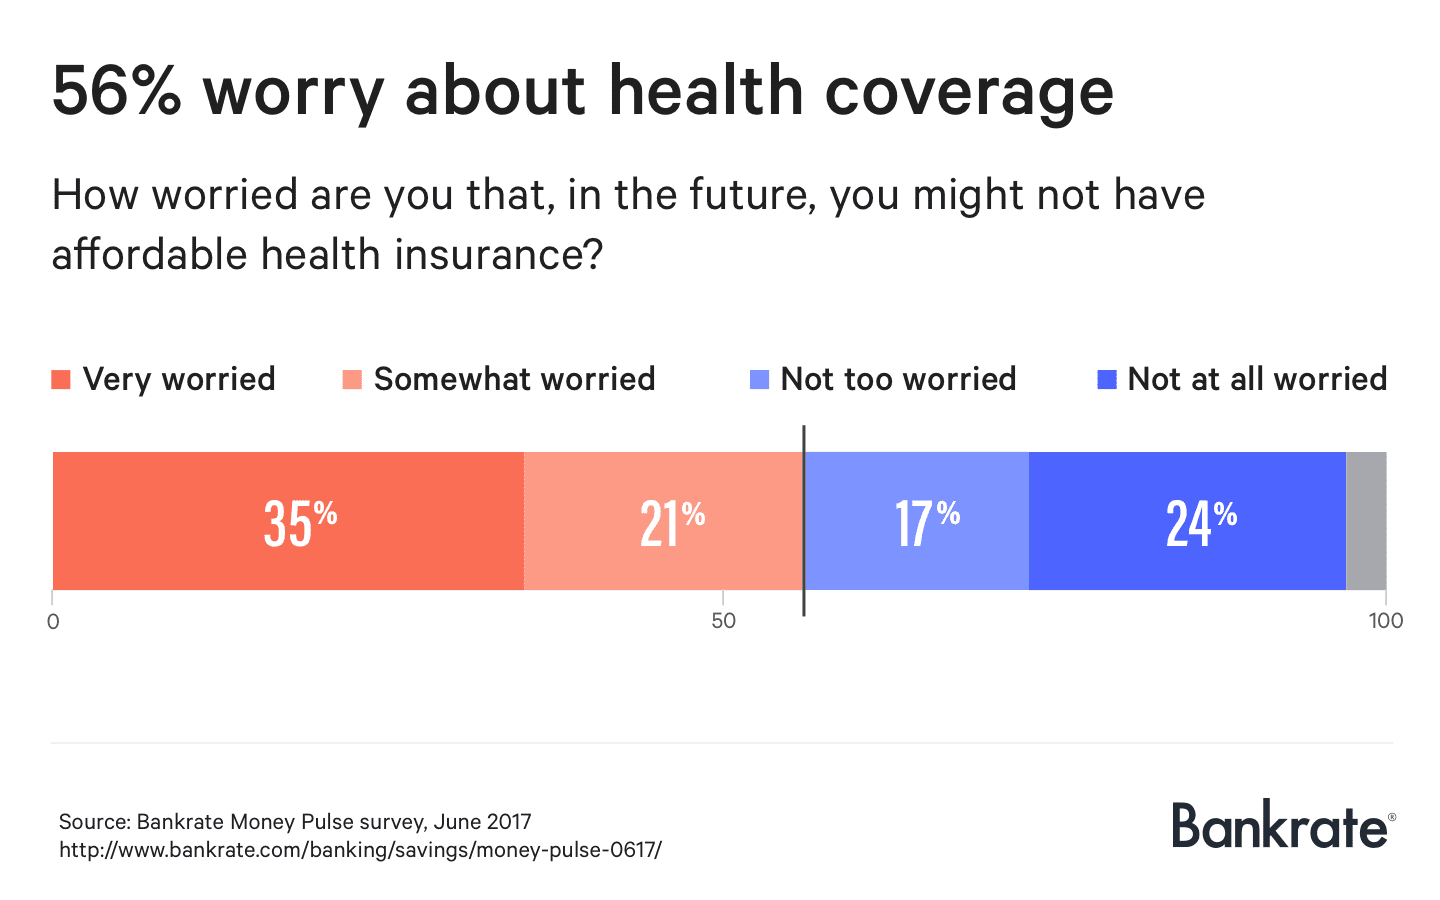 56% worry about health coverage